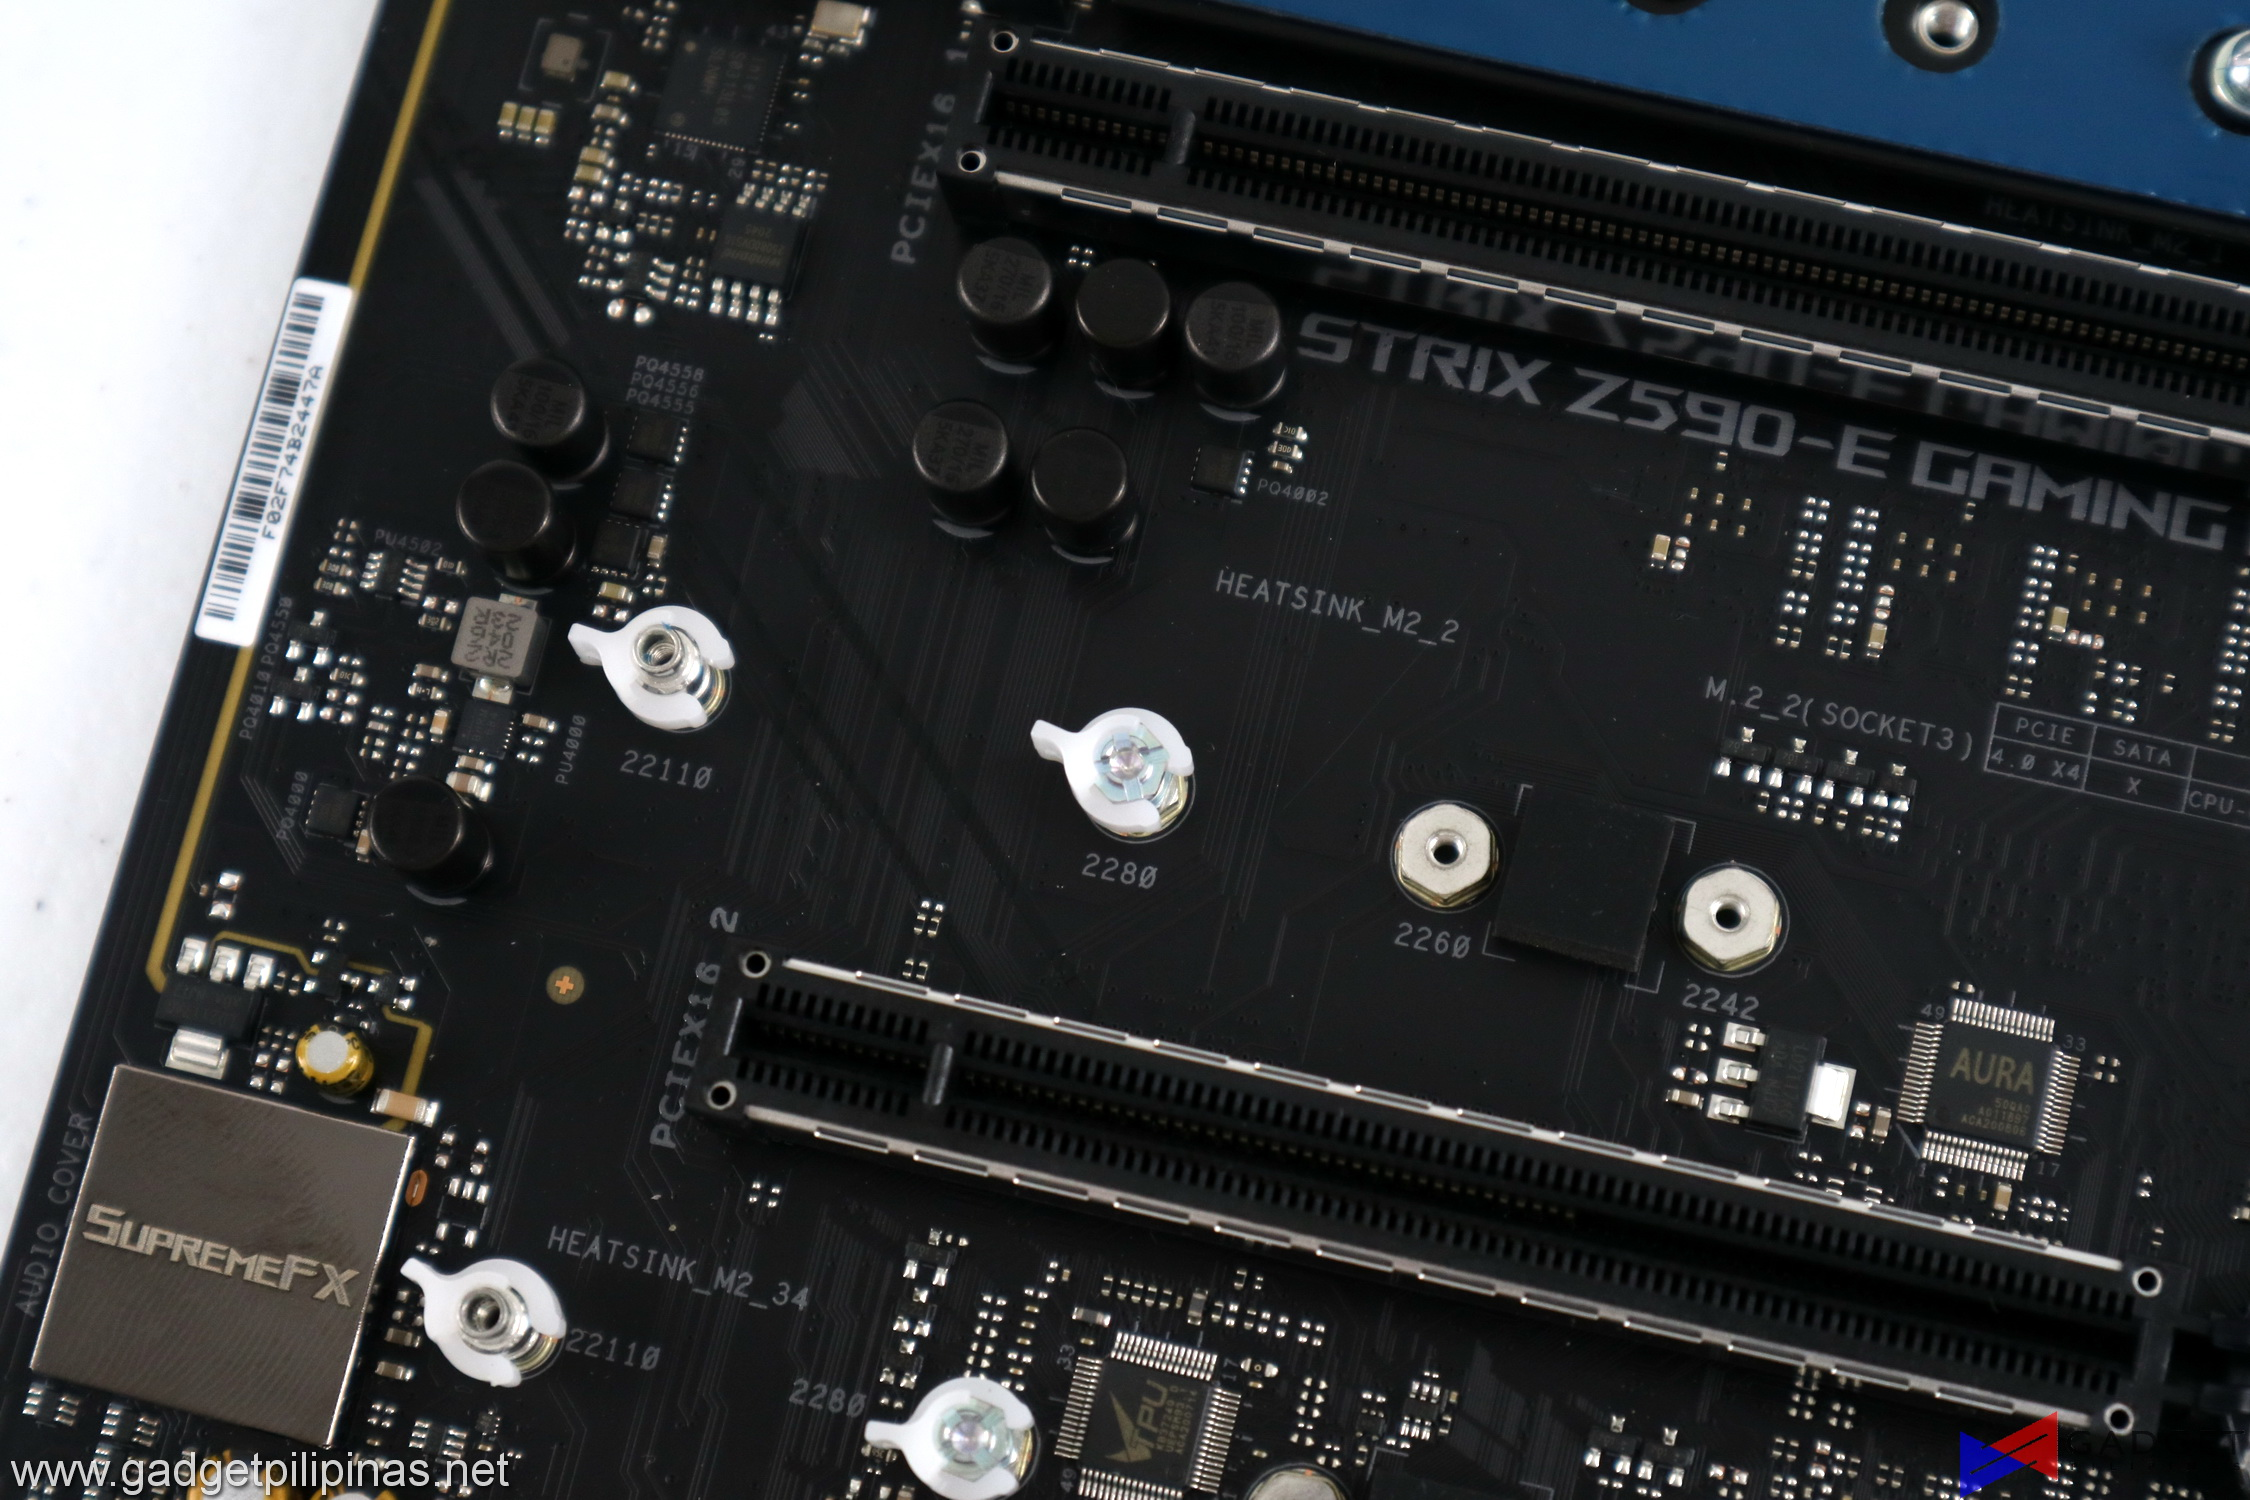 ASUS ROG Strix Z590-E Gaming Motherboard Review QLatch